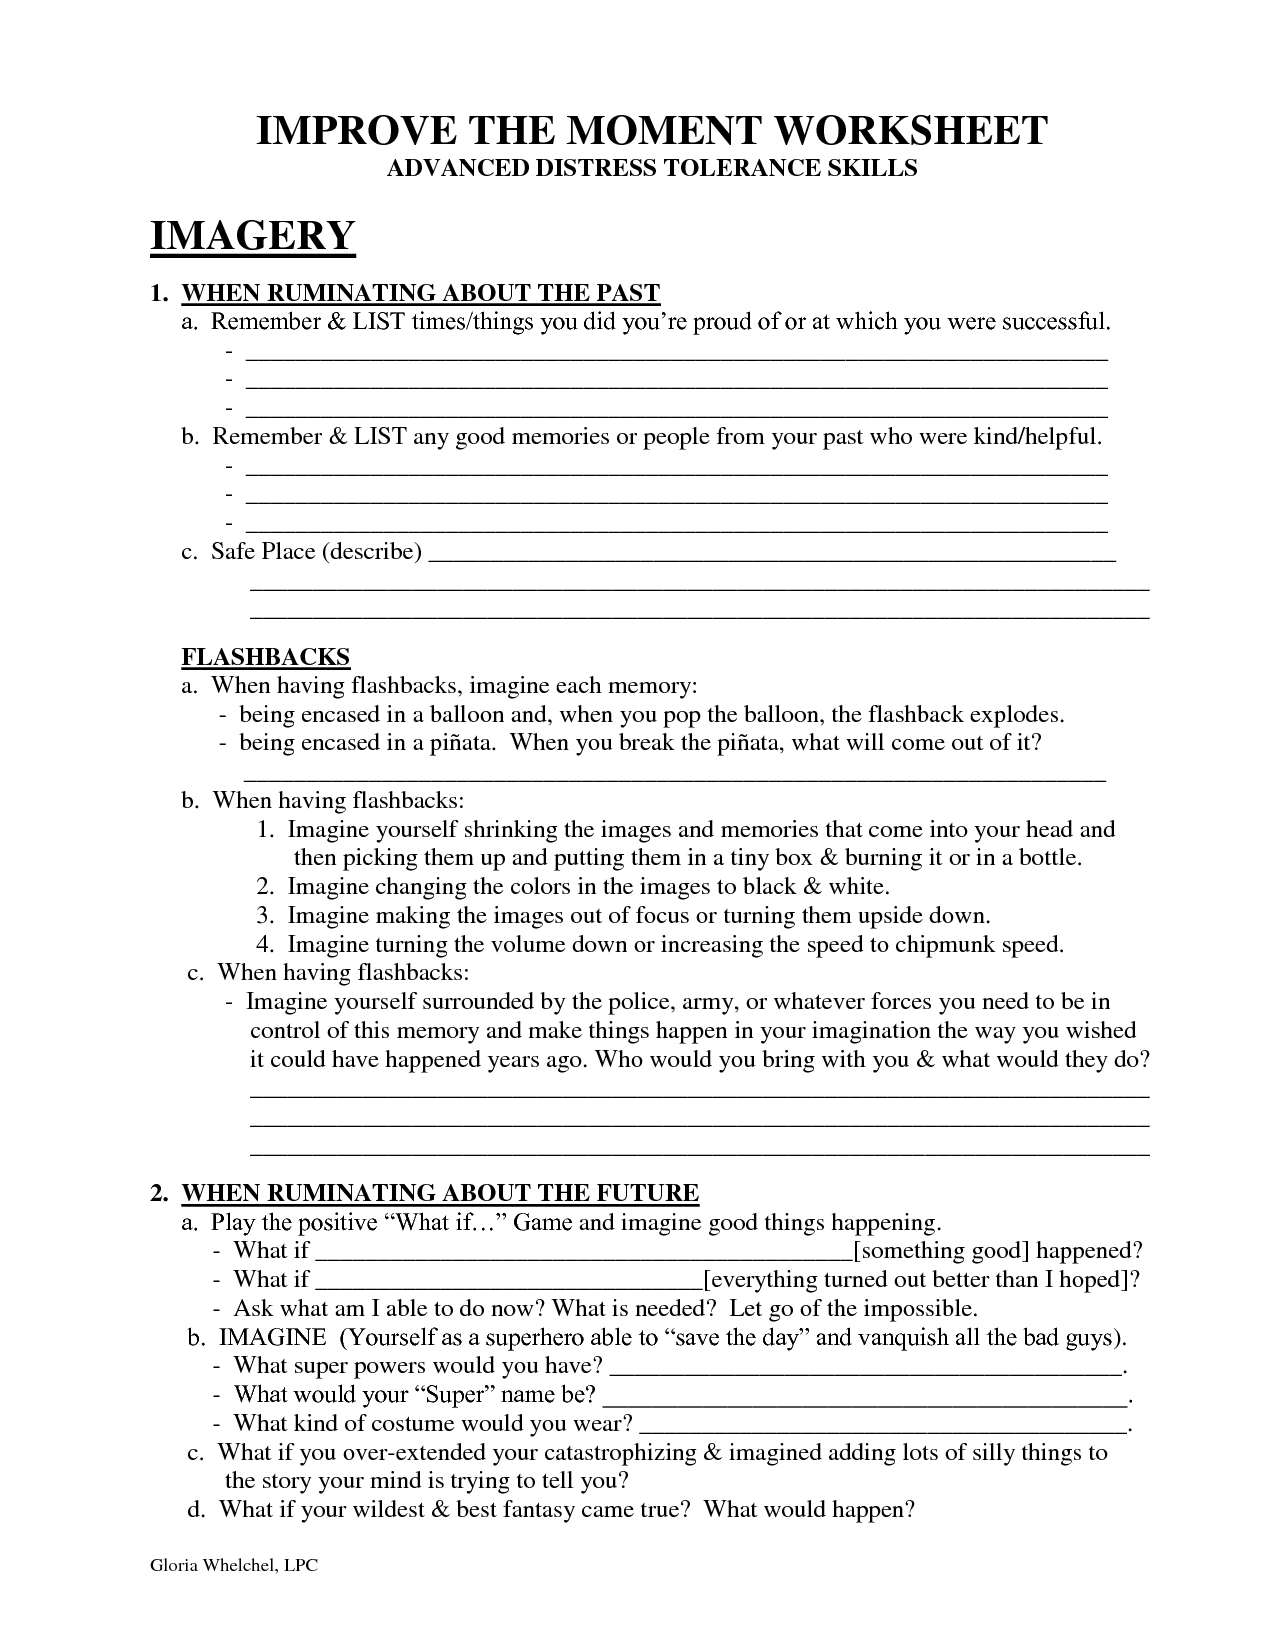 Worksheets For Therapy : Improve the moment worksheet dbt self help therapy